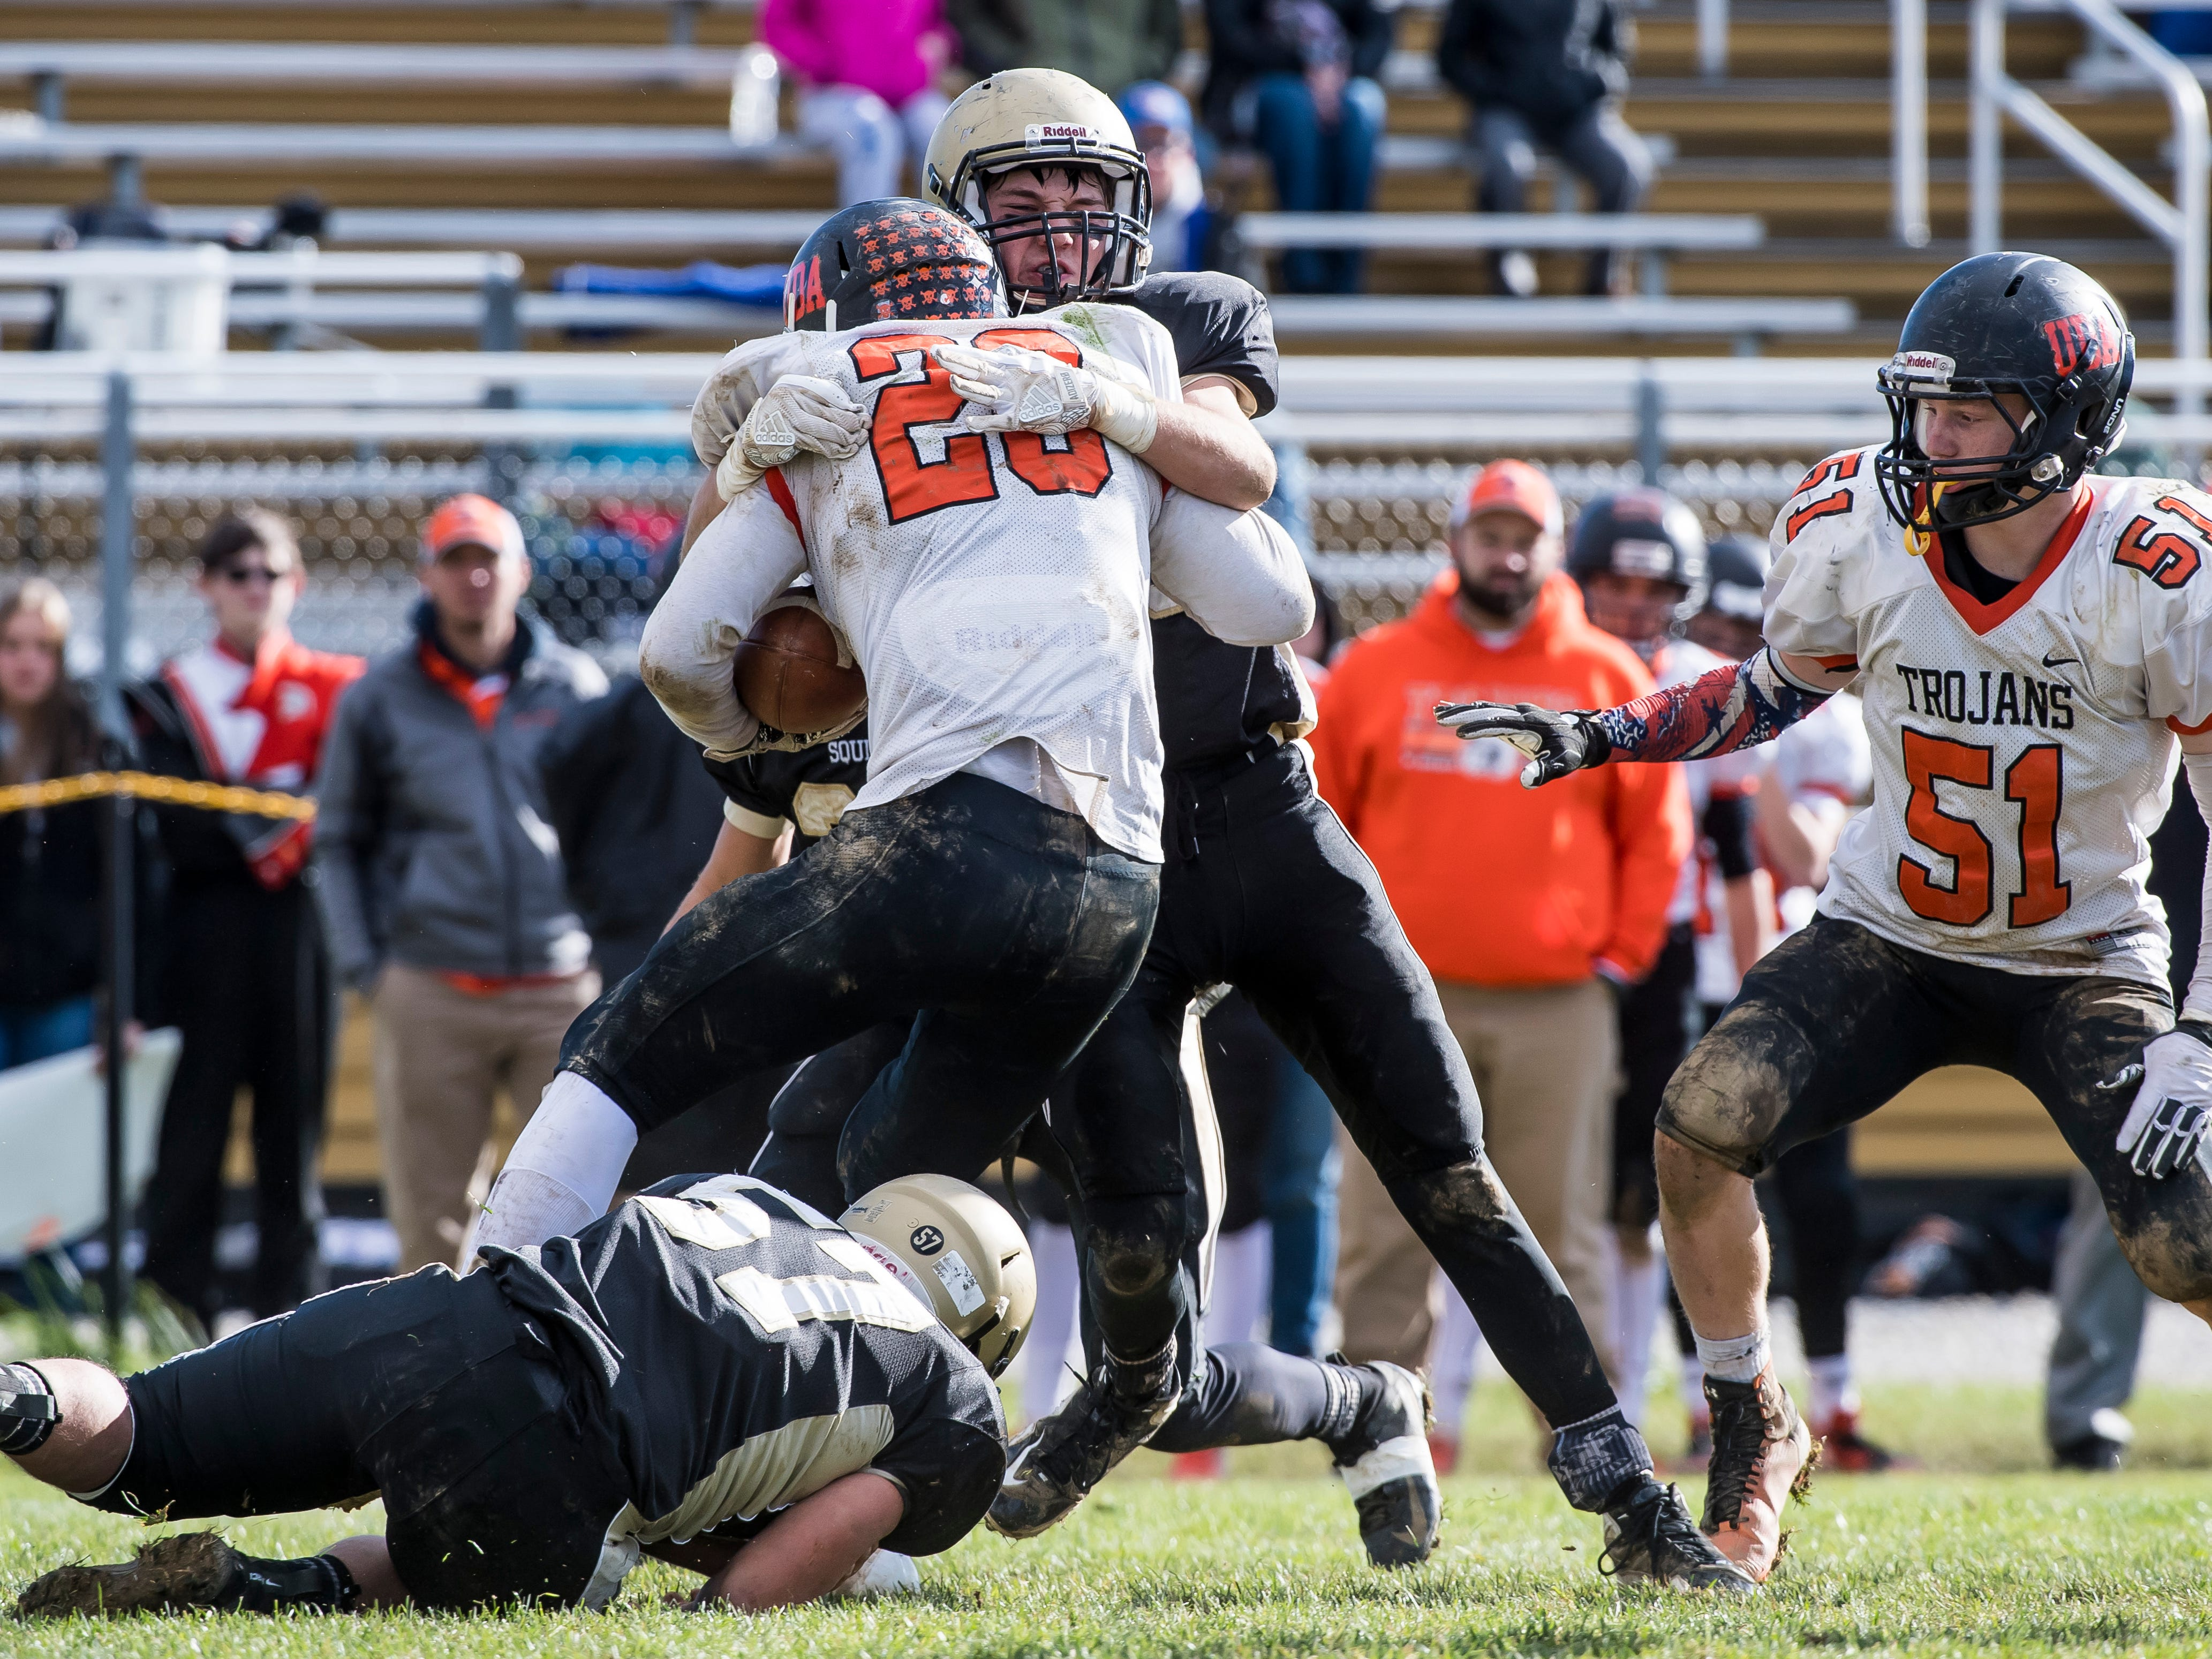 Upper Dauphin's Mason Wiest is tackled by a Delone Catholic defender during a District III Class 2A semifinal game on Saturday, November 3, 2018. The Squires won 48-23.